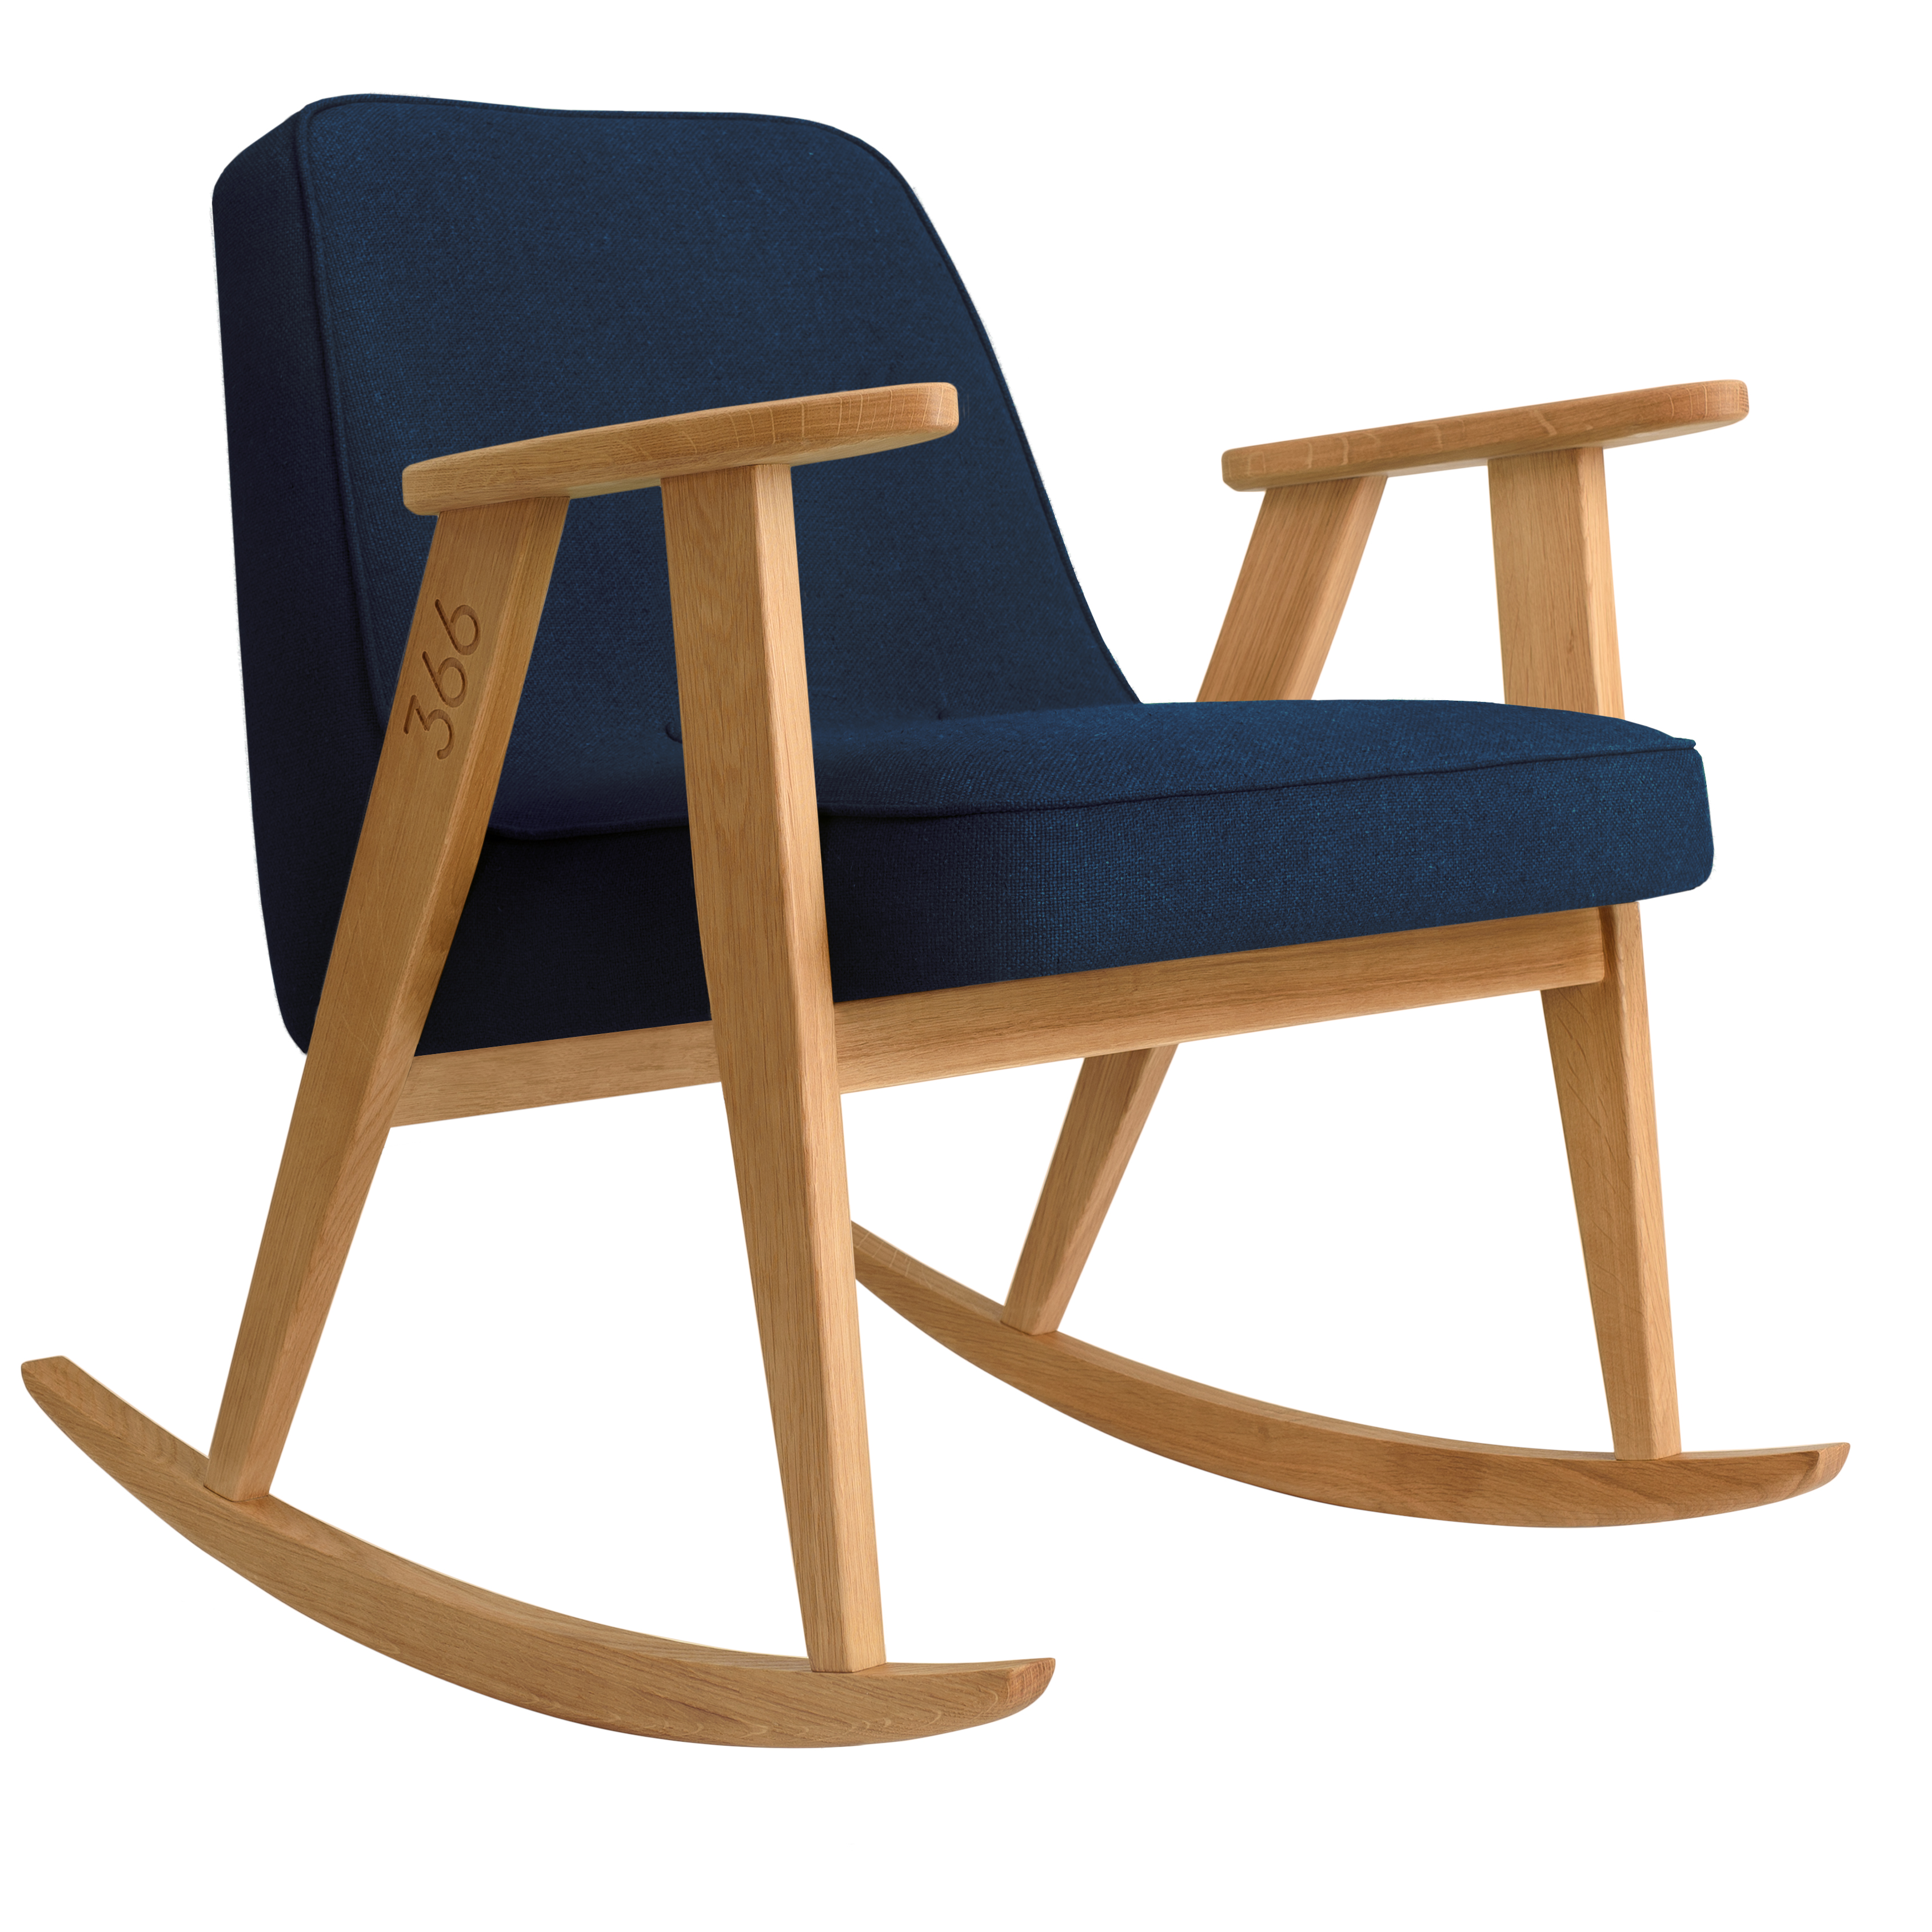 366-concept-366-rocking-chair-oak-02-wool-jeans